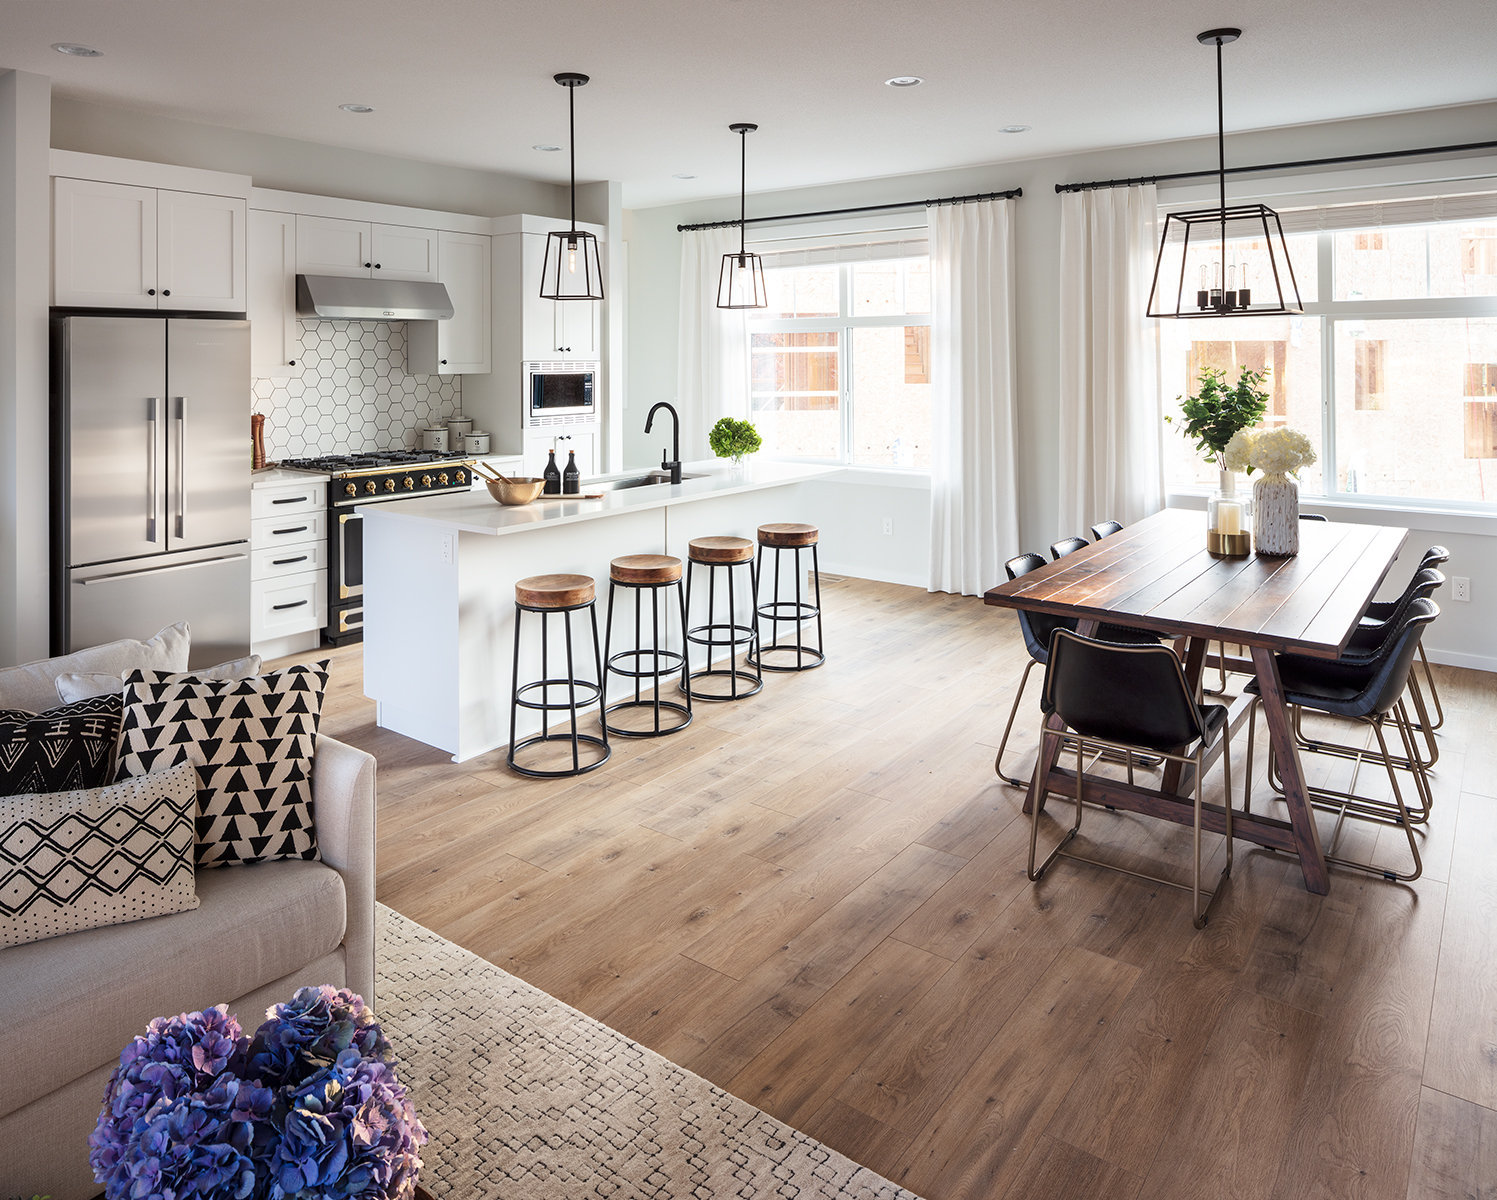 Kitchen, Dining & Living Area!